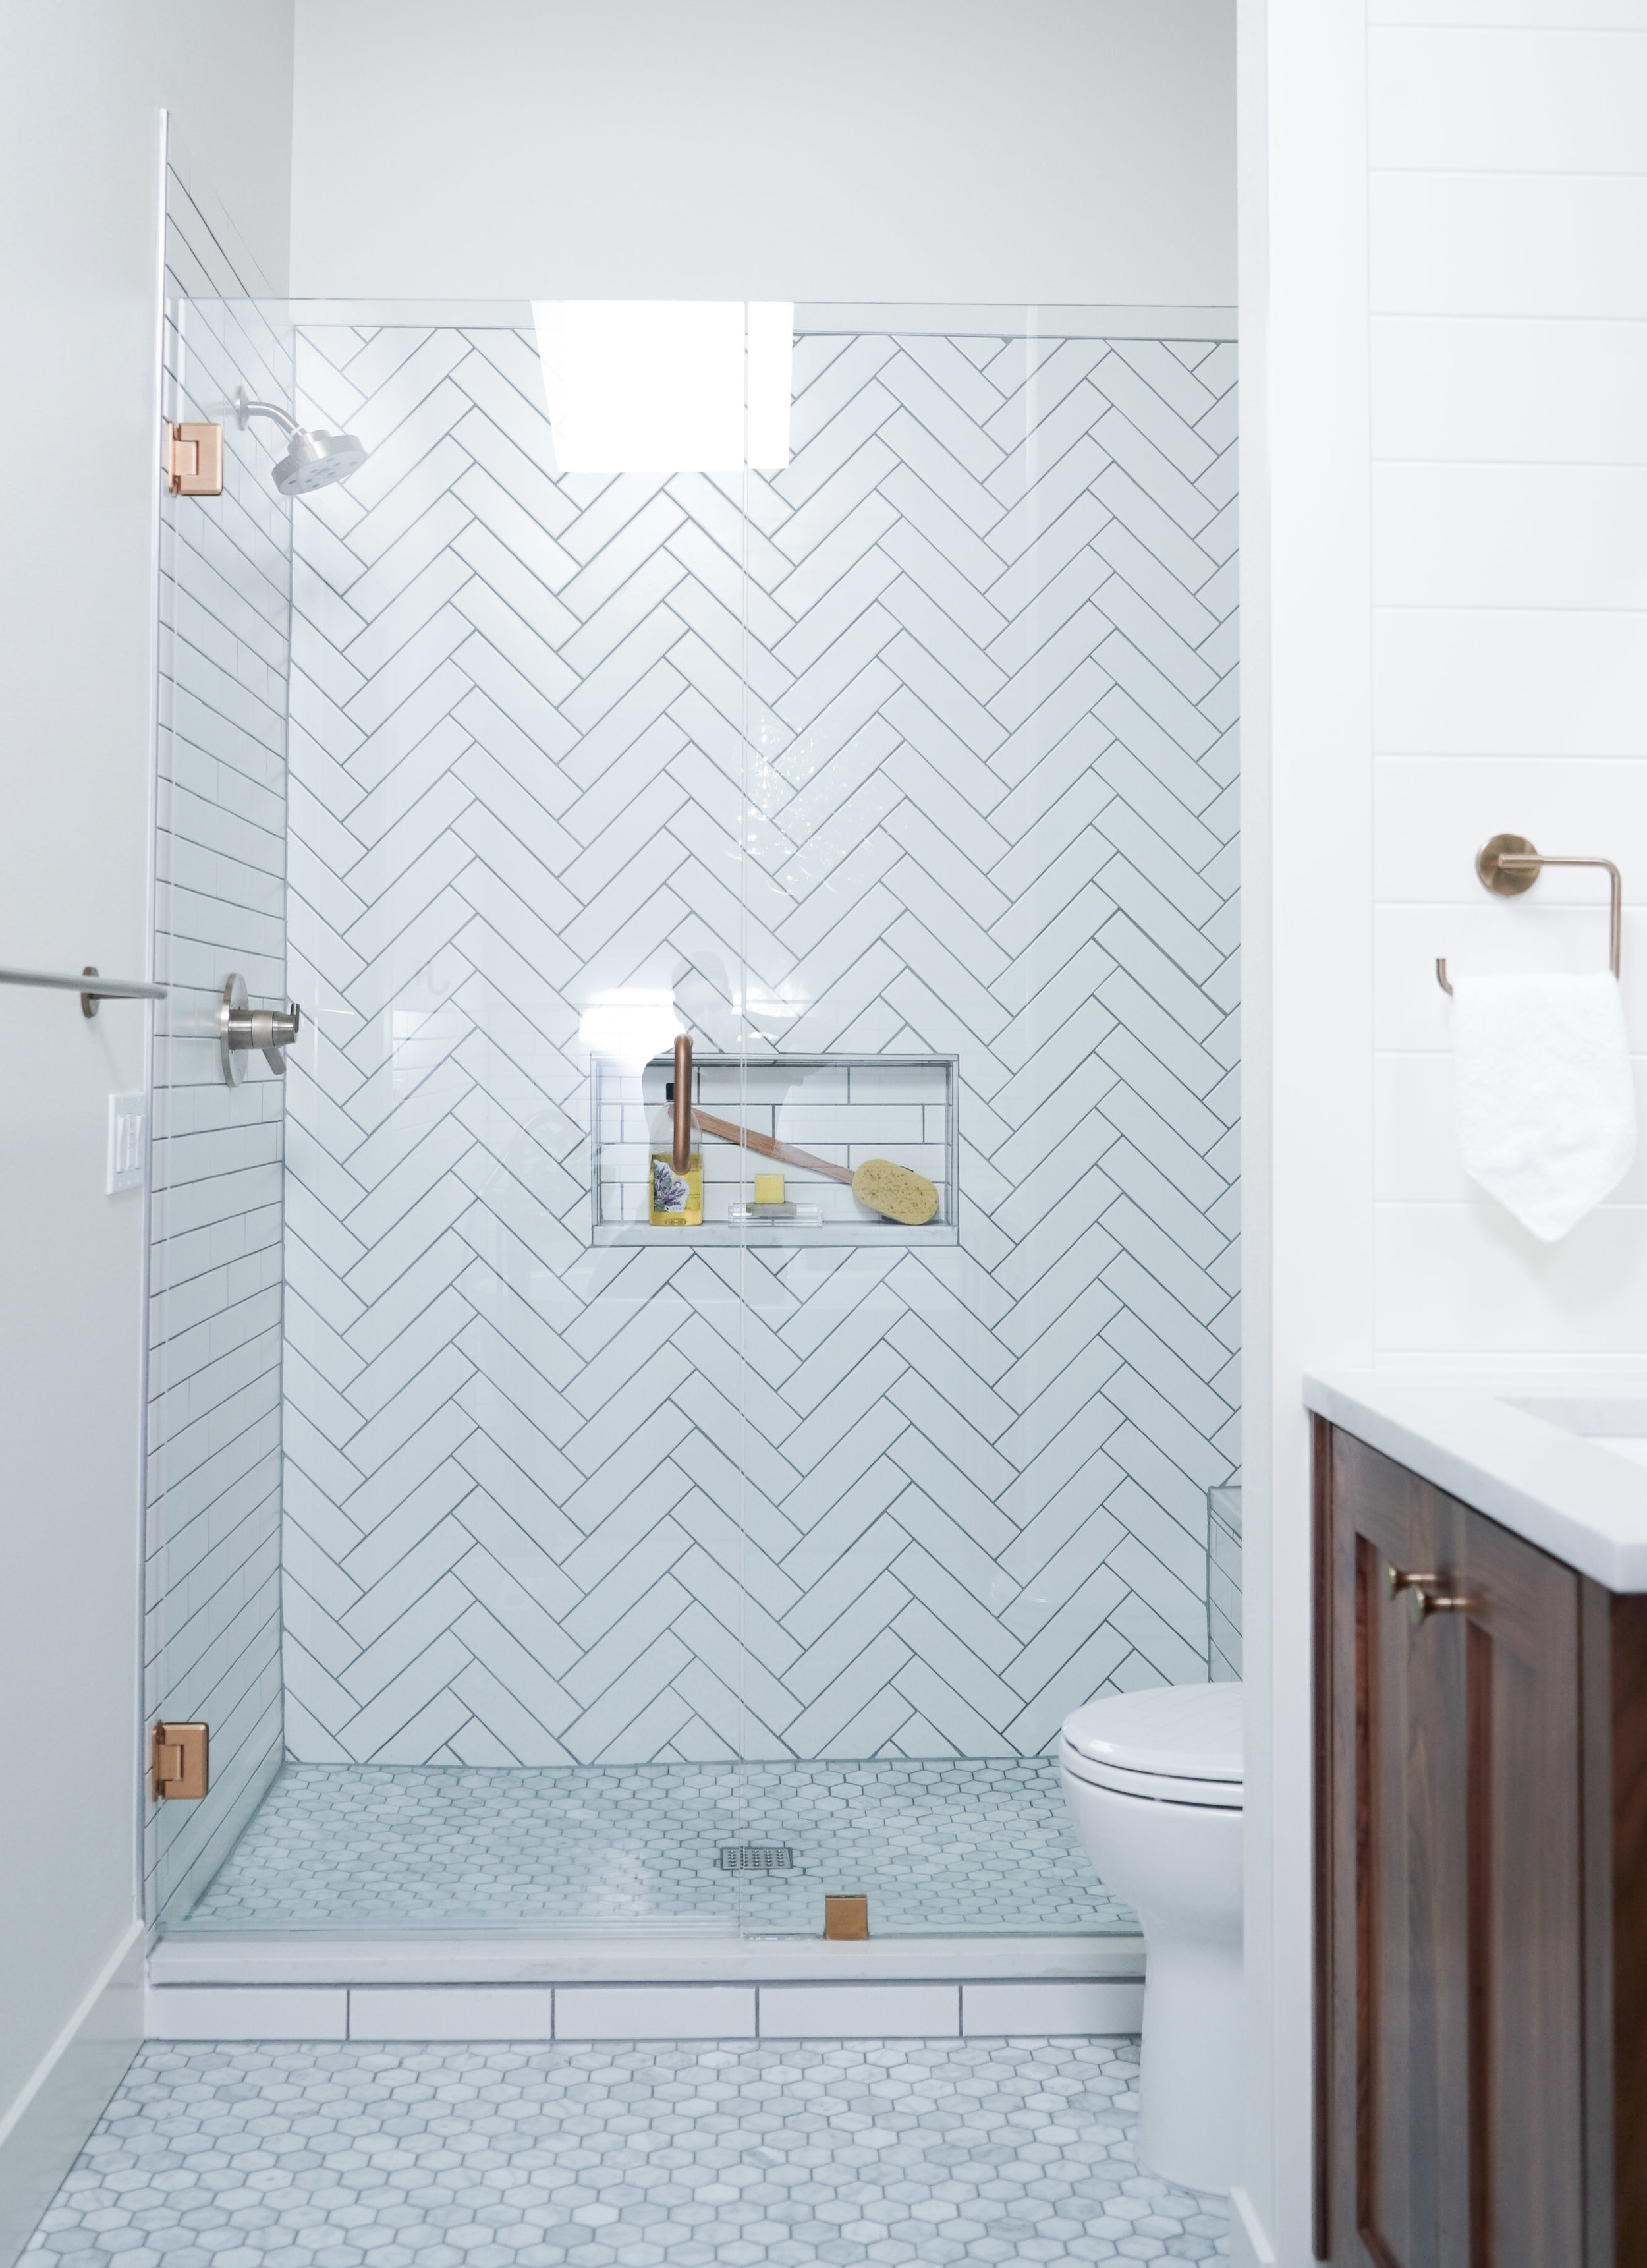 AFTER // Beautiful hexagon flooring, and traditional herringbone shower tile.